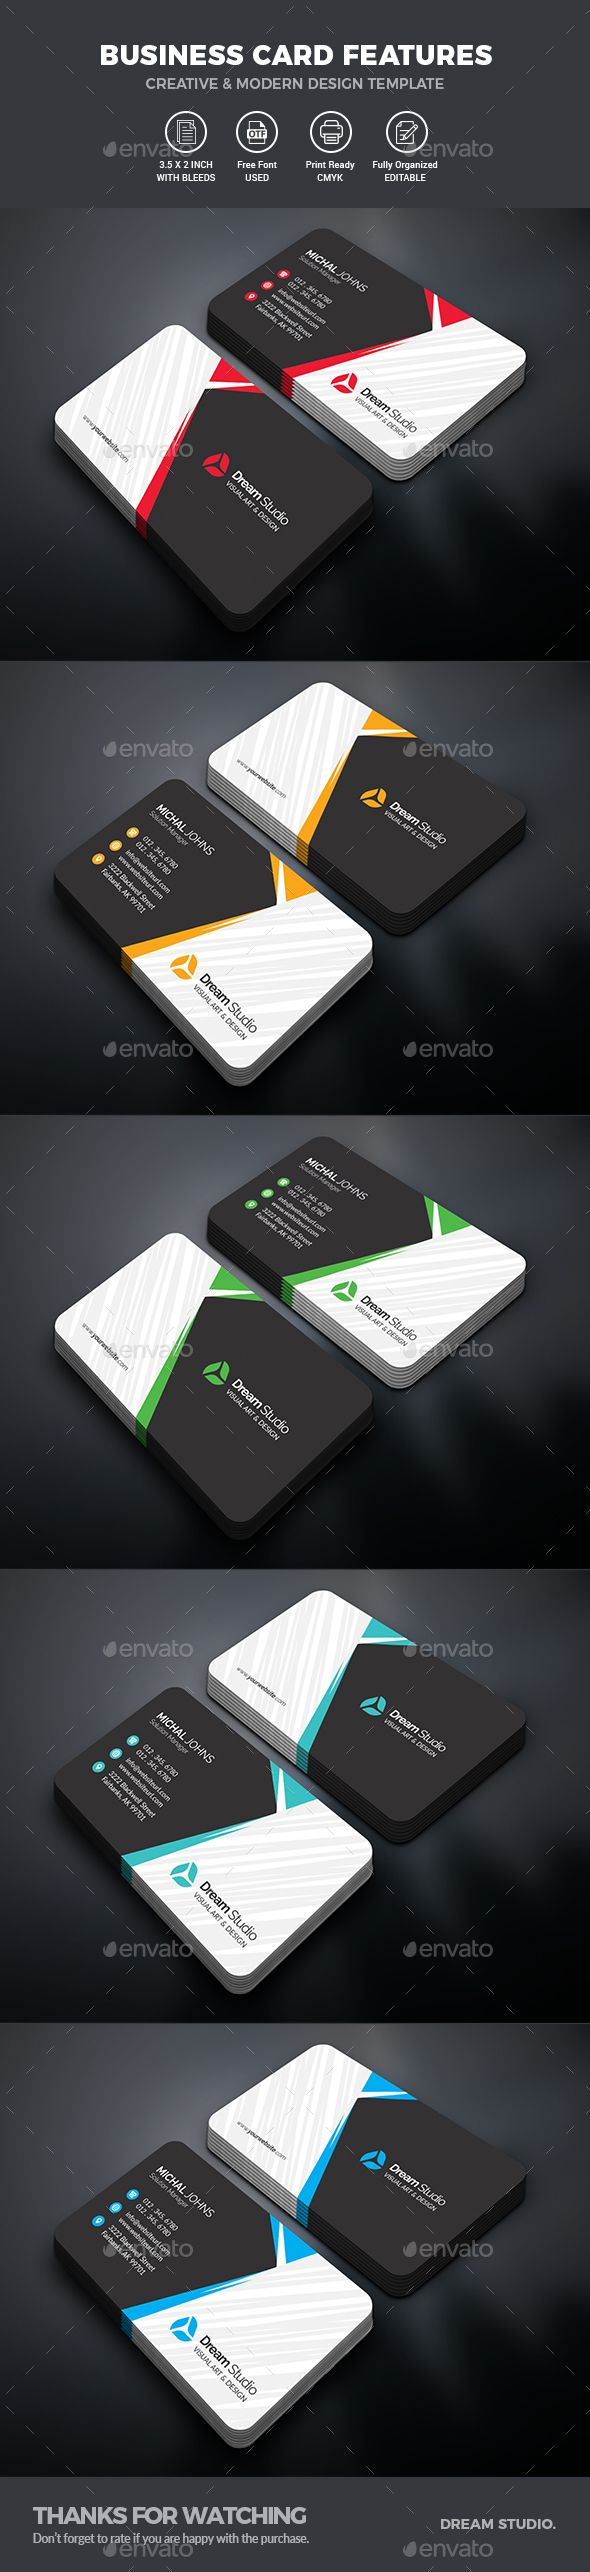 Business Cards - Business Cards Print Templates : https://graphicriver.net/item/business-cards/20113305?s_rank=11&ref=Al-fatih